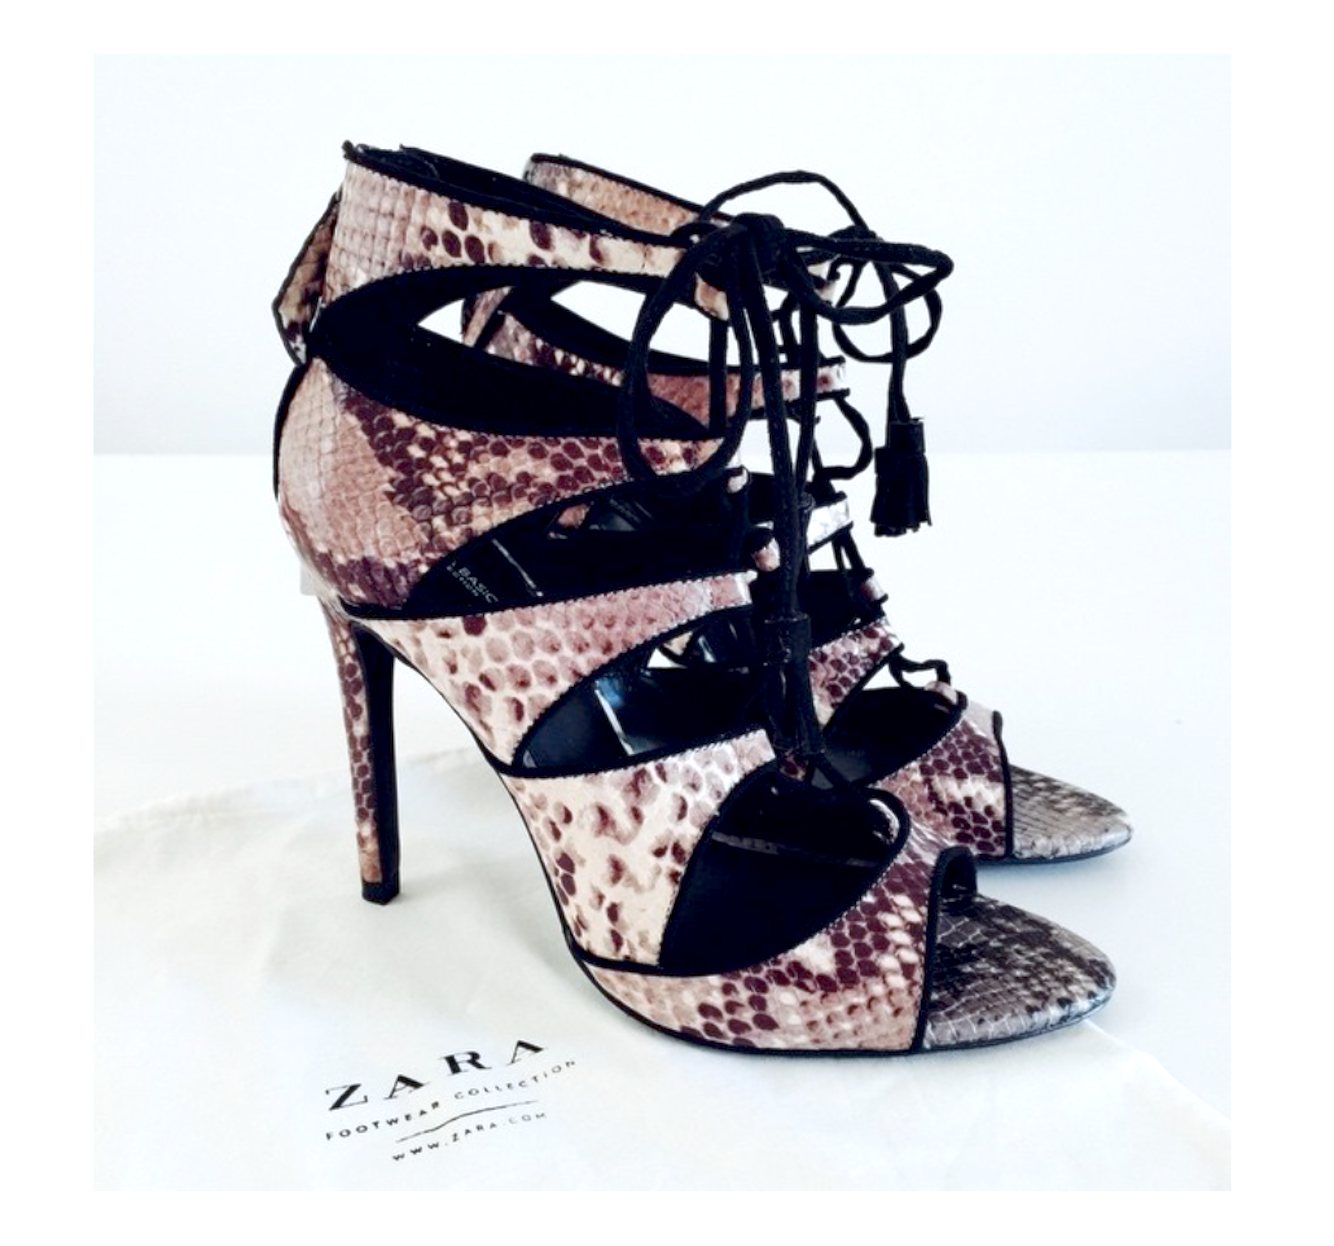 ZARA SNAKE PRINT LEATHER HIGH HEEL LACE UP SHOES SANDALS ANKLE BOOTS B NEW